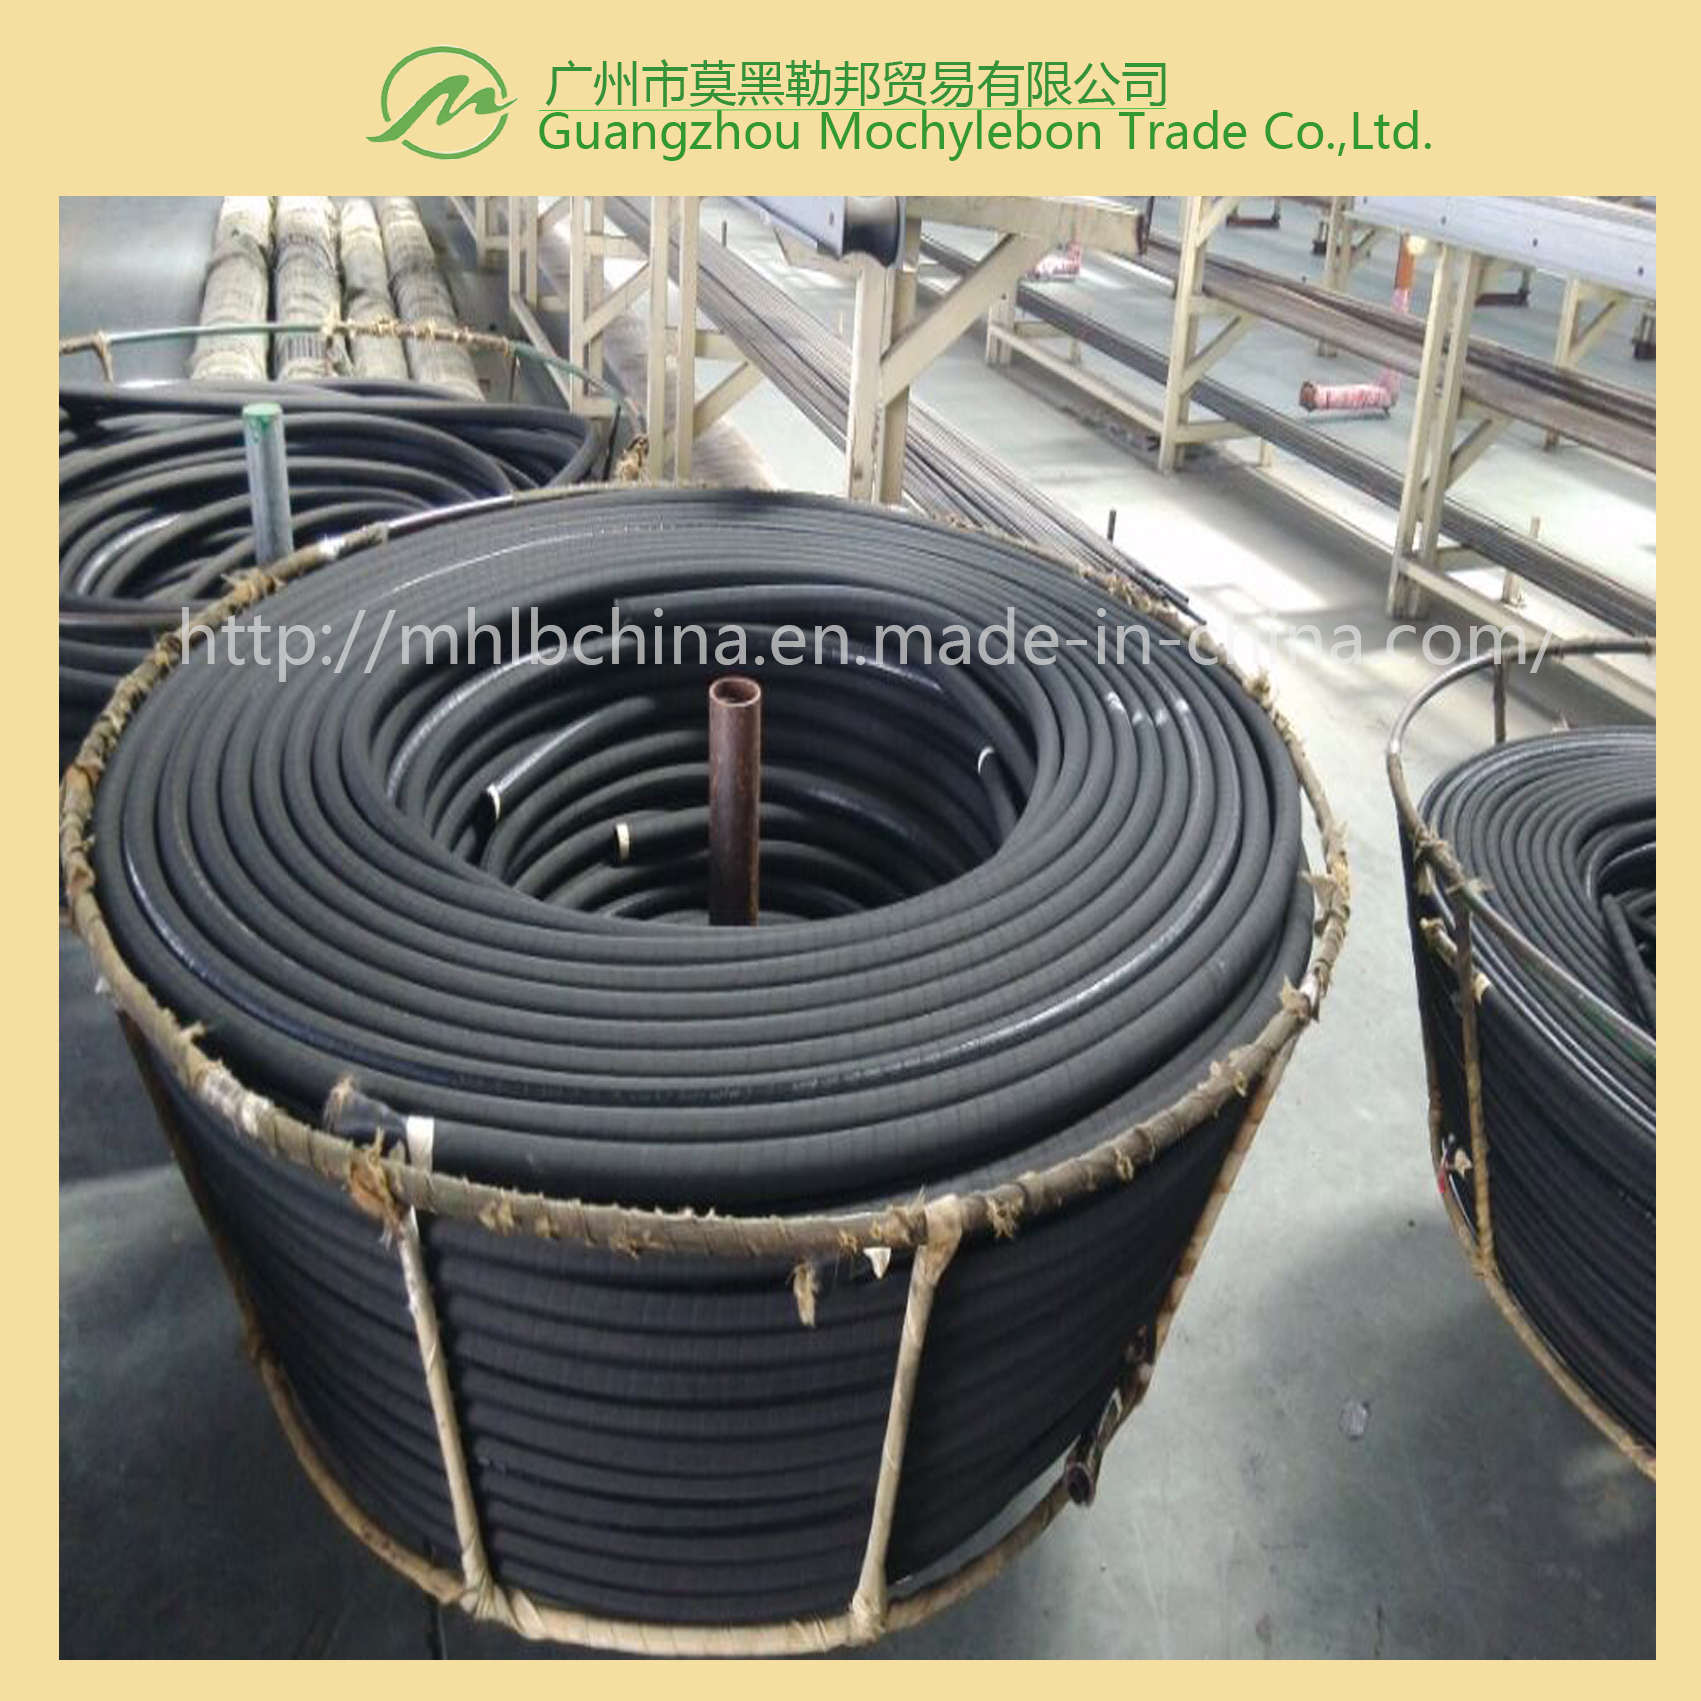 Wire Spiral Hydraulic Hose Fitting (EN856-4SP-1-1/4)